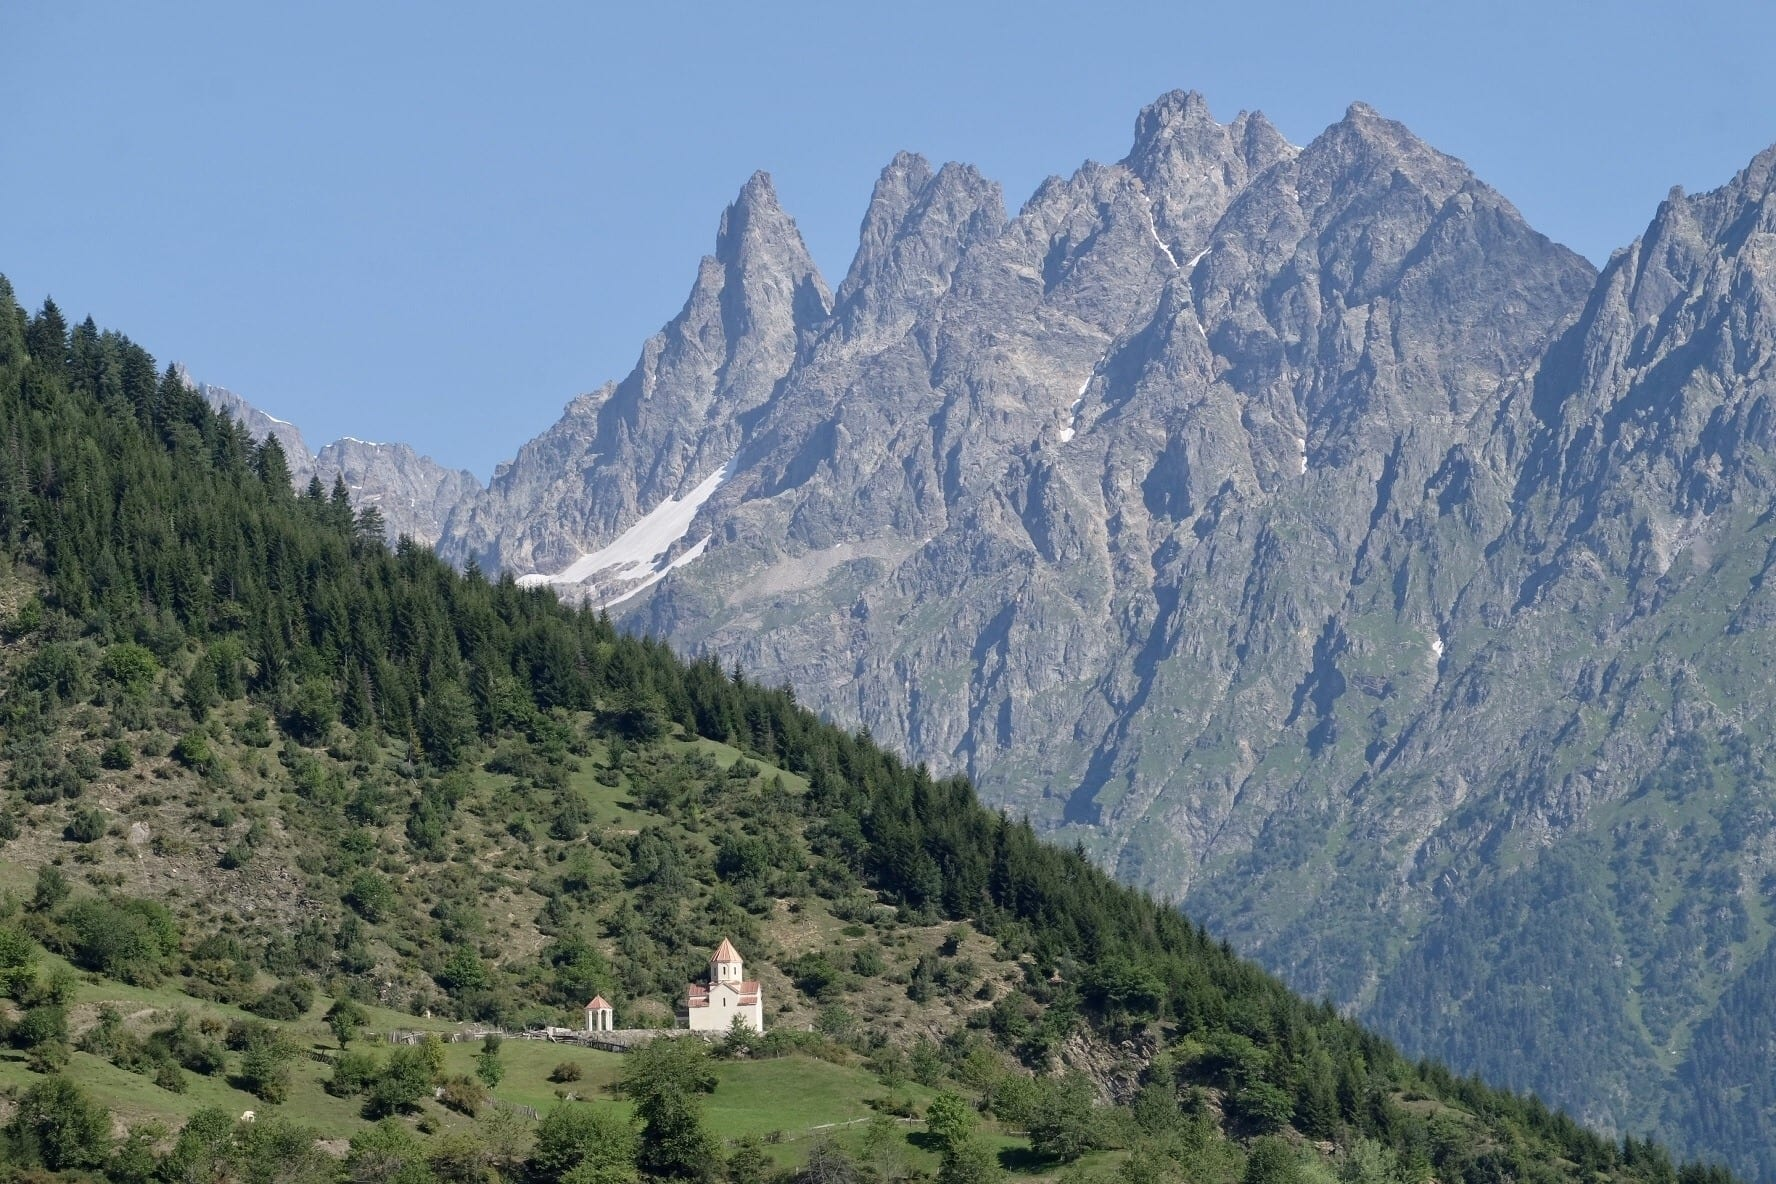 Two mountains: a green one with a tiny white church perched on it, in front of a taller, jagged gray mountain in Svaneti, Georgia.